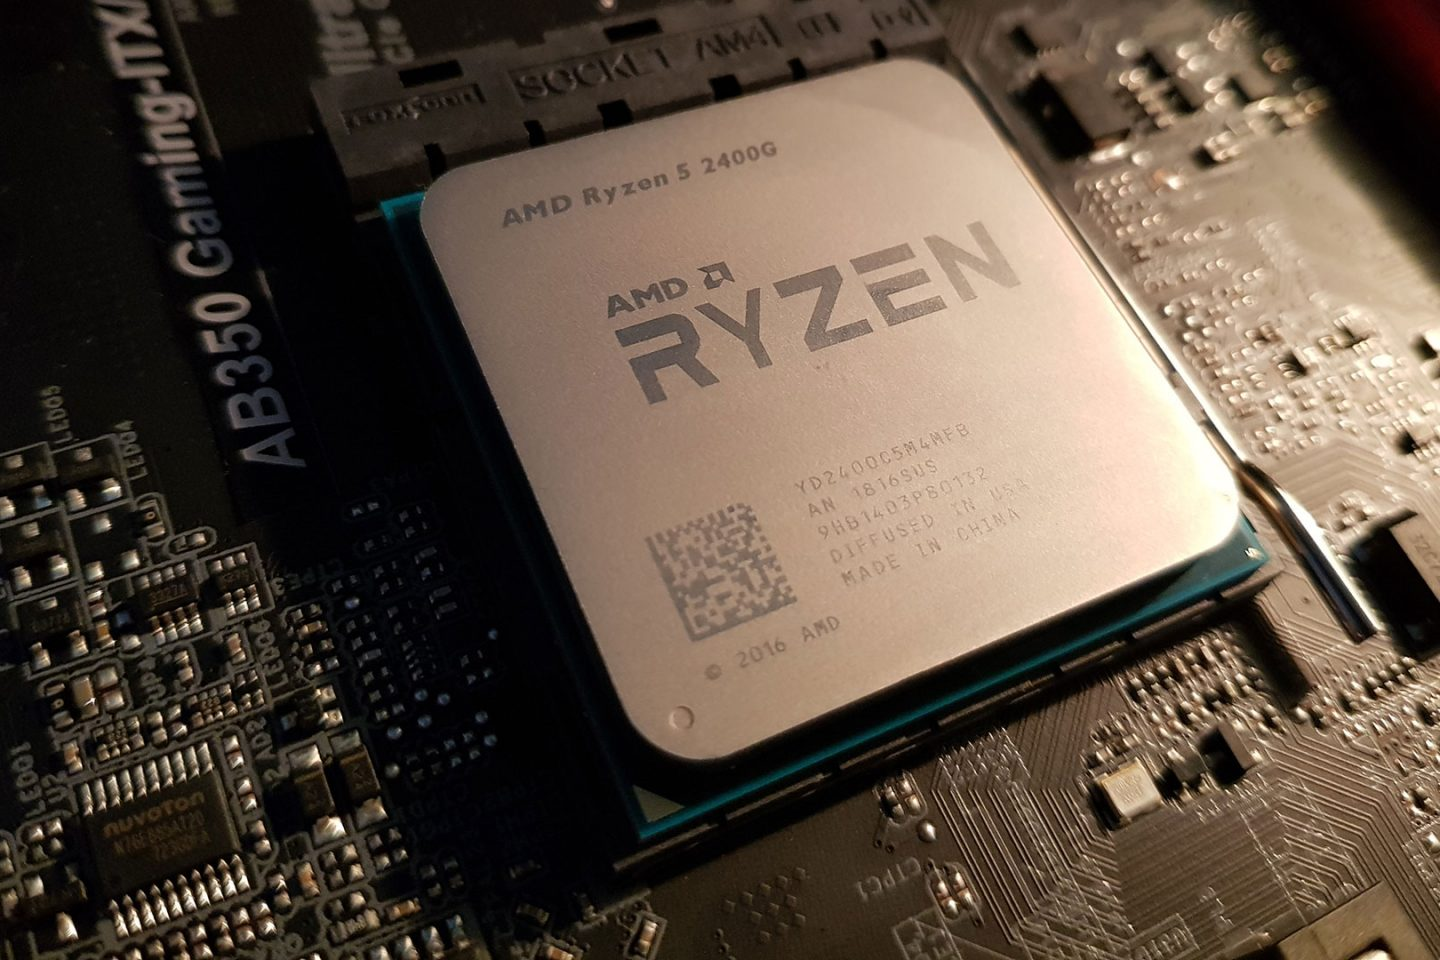 AMD Ryzen 5 2400G Gaming PC